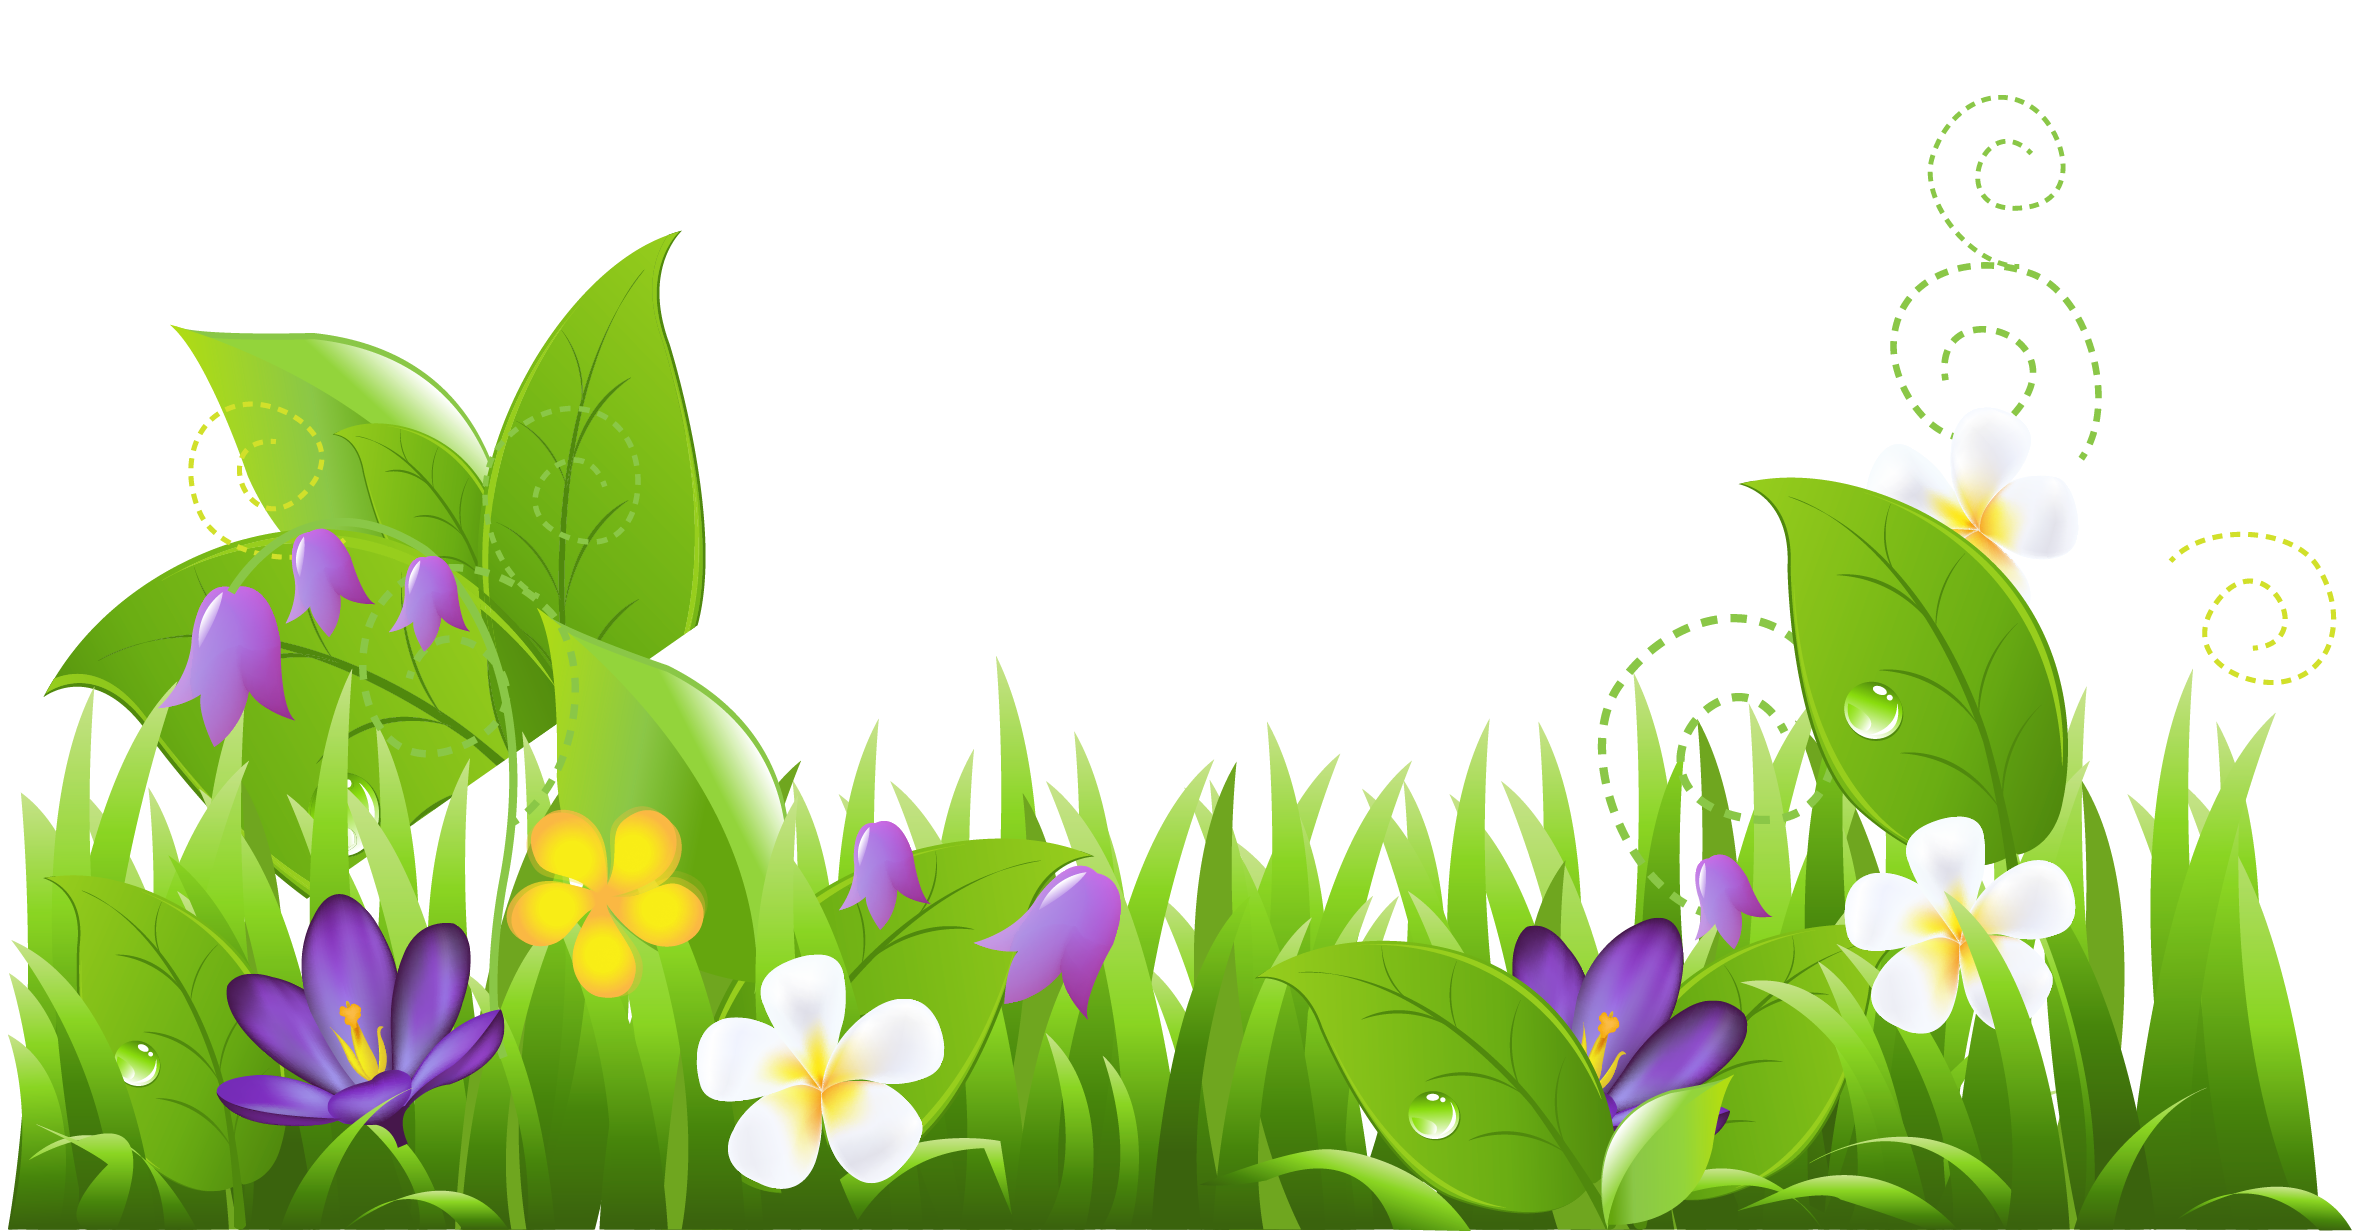 Grass and flowers png. Gardening clipart beautiful surroundings